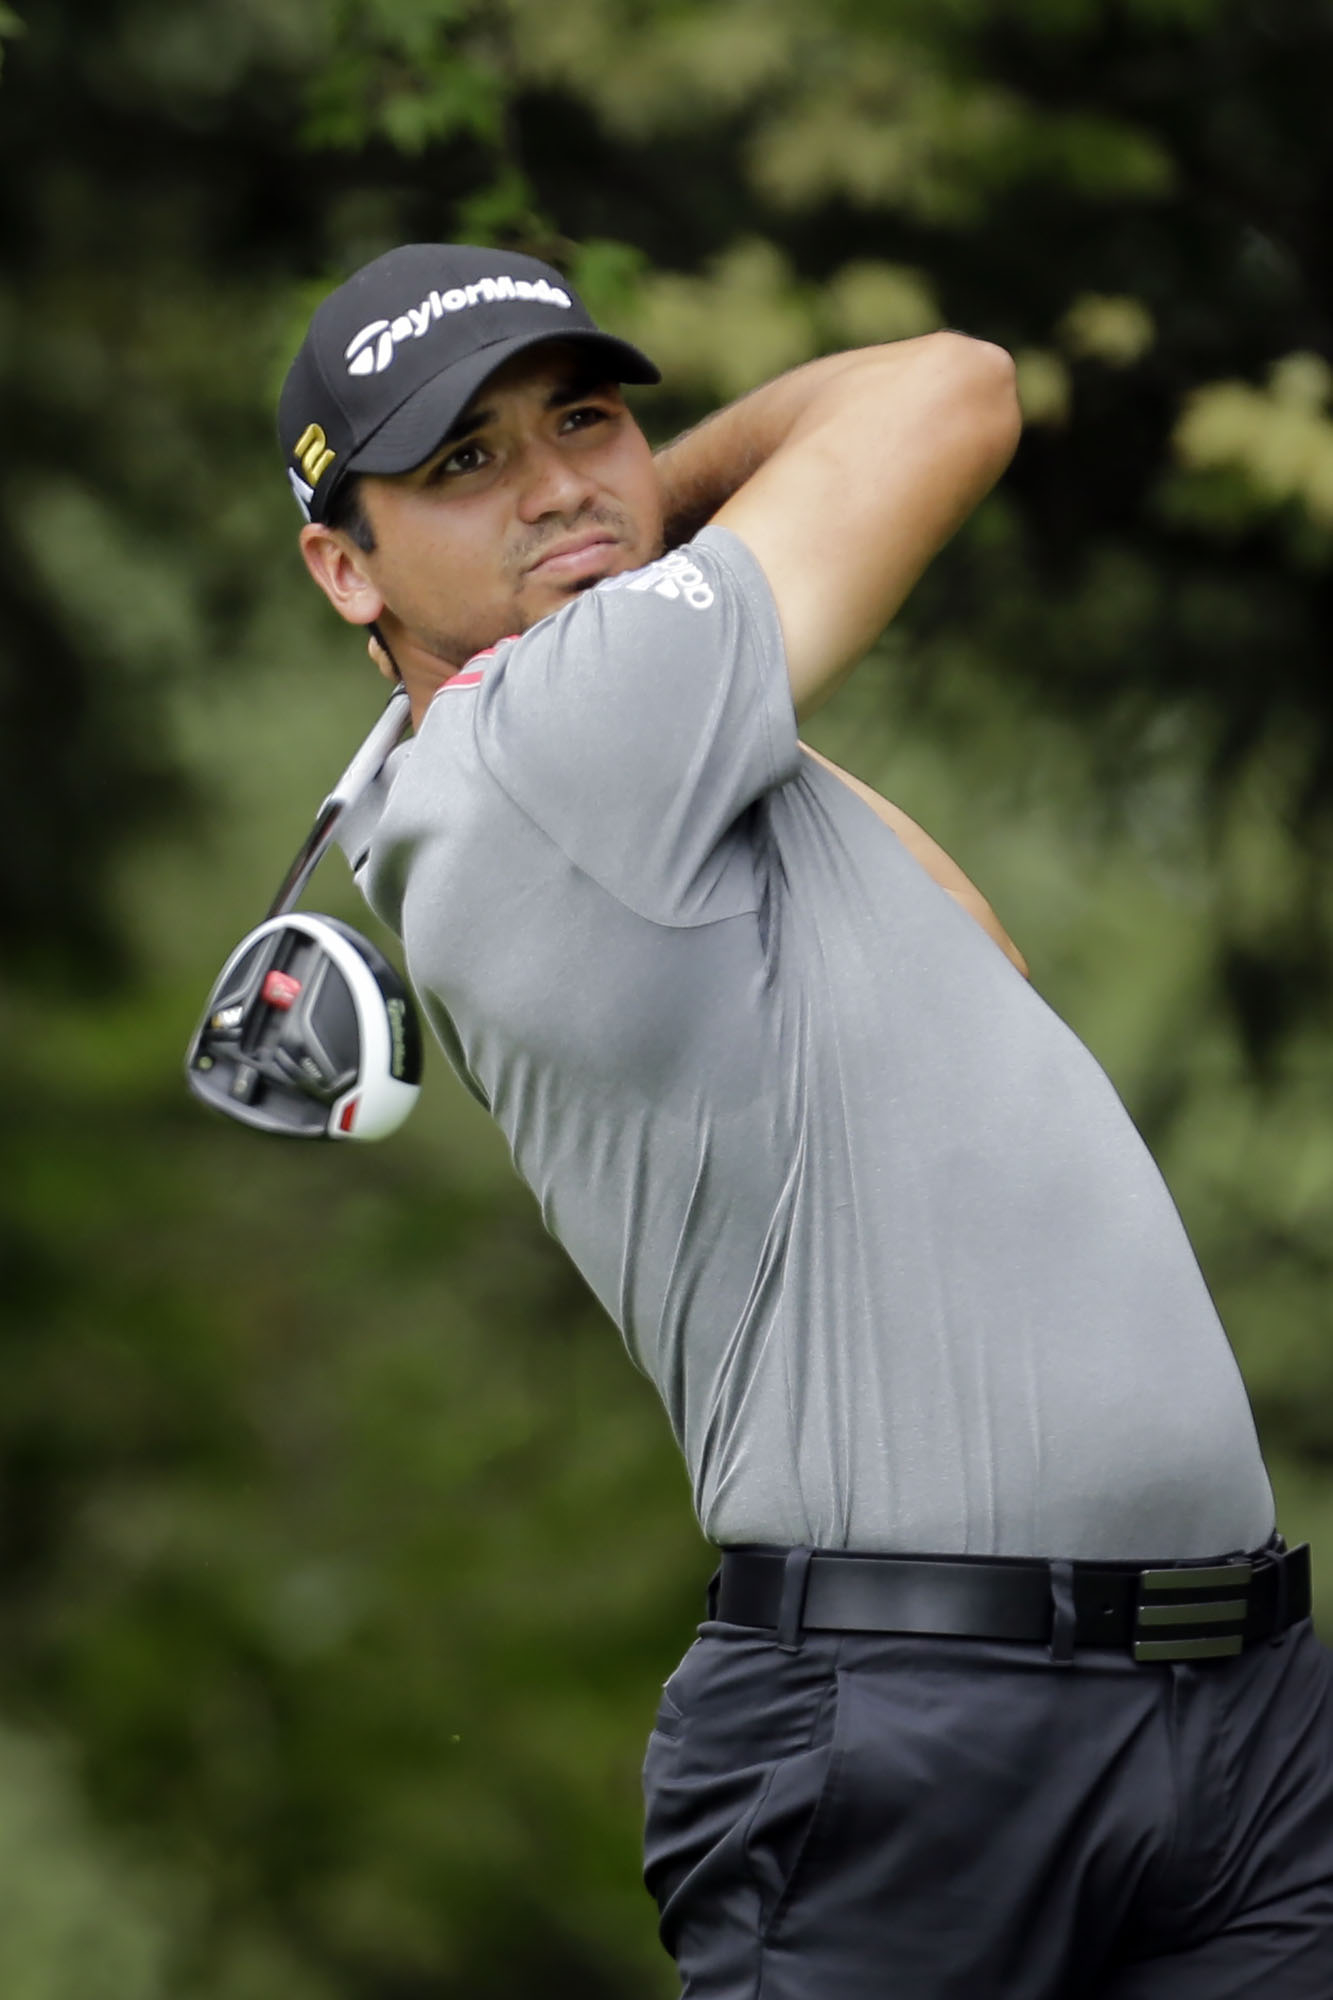 Jason Day, of Australia, watches his drive off the tee of the fifth hole during the second round of the BMW Championship golf tournament at Crooked Stick Golf Club in Carmel, Ind., Friday, Sept. 9, 2016. (AP Photo/AJ Mast)